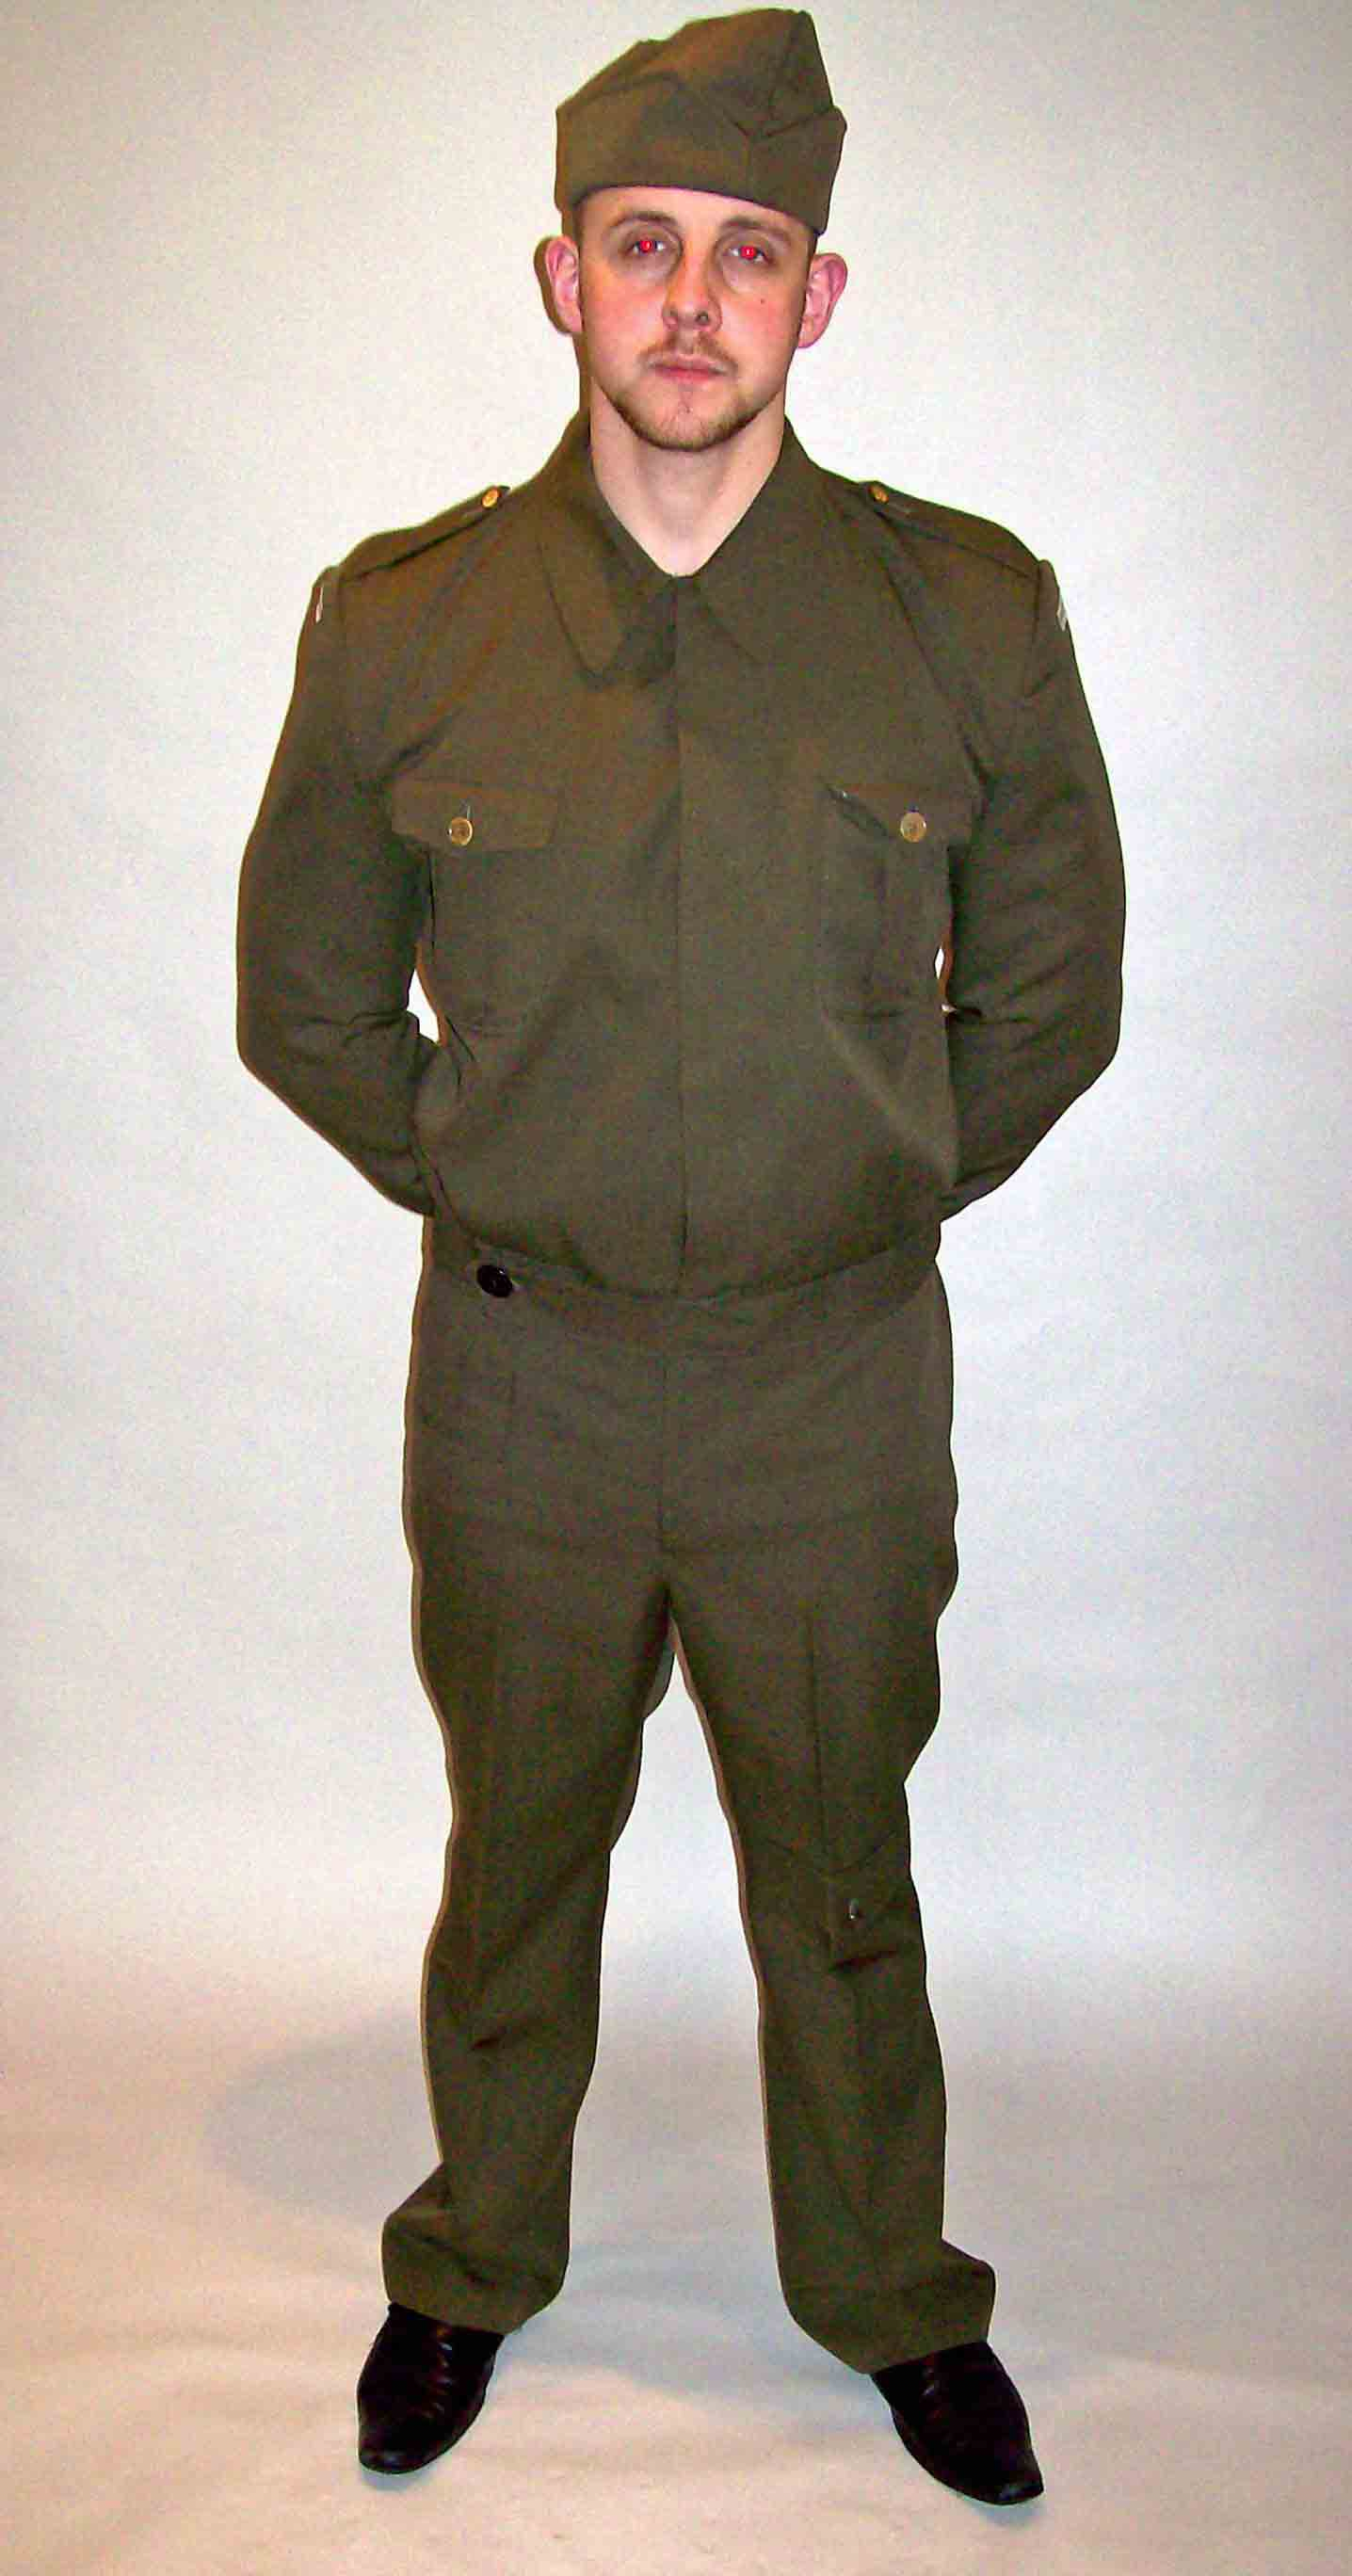 Home Guard WW2 Fancy Dress Costume Hire